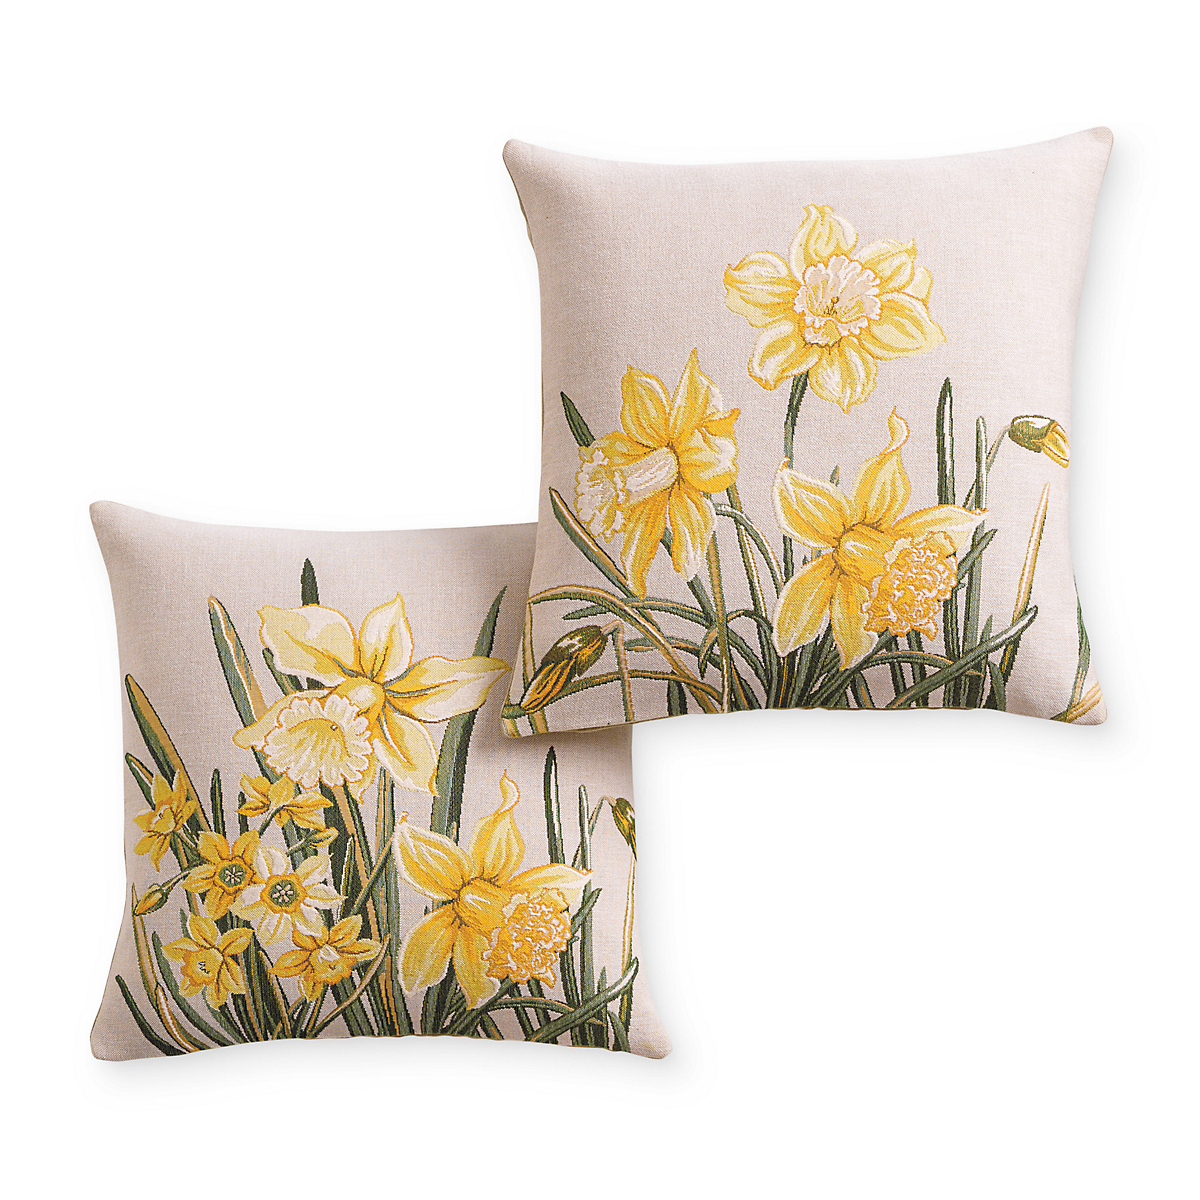 Daffodils Pillows